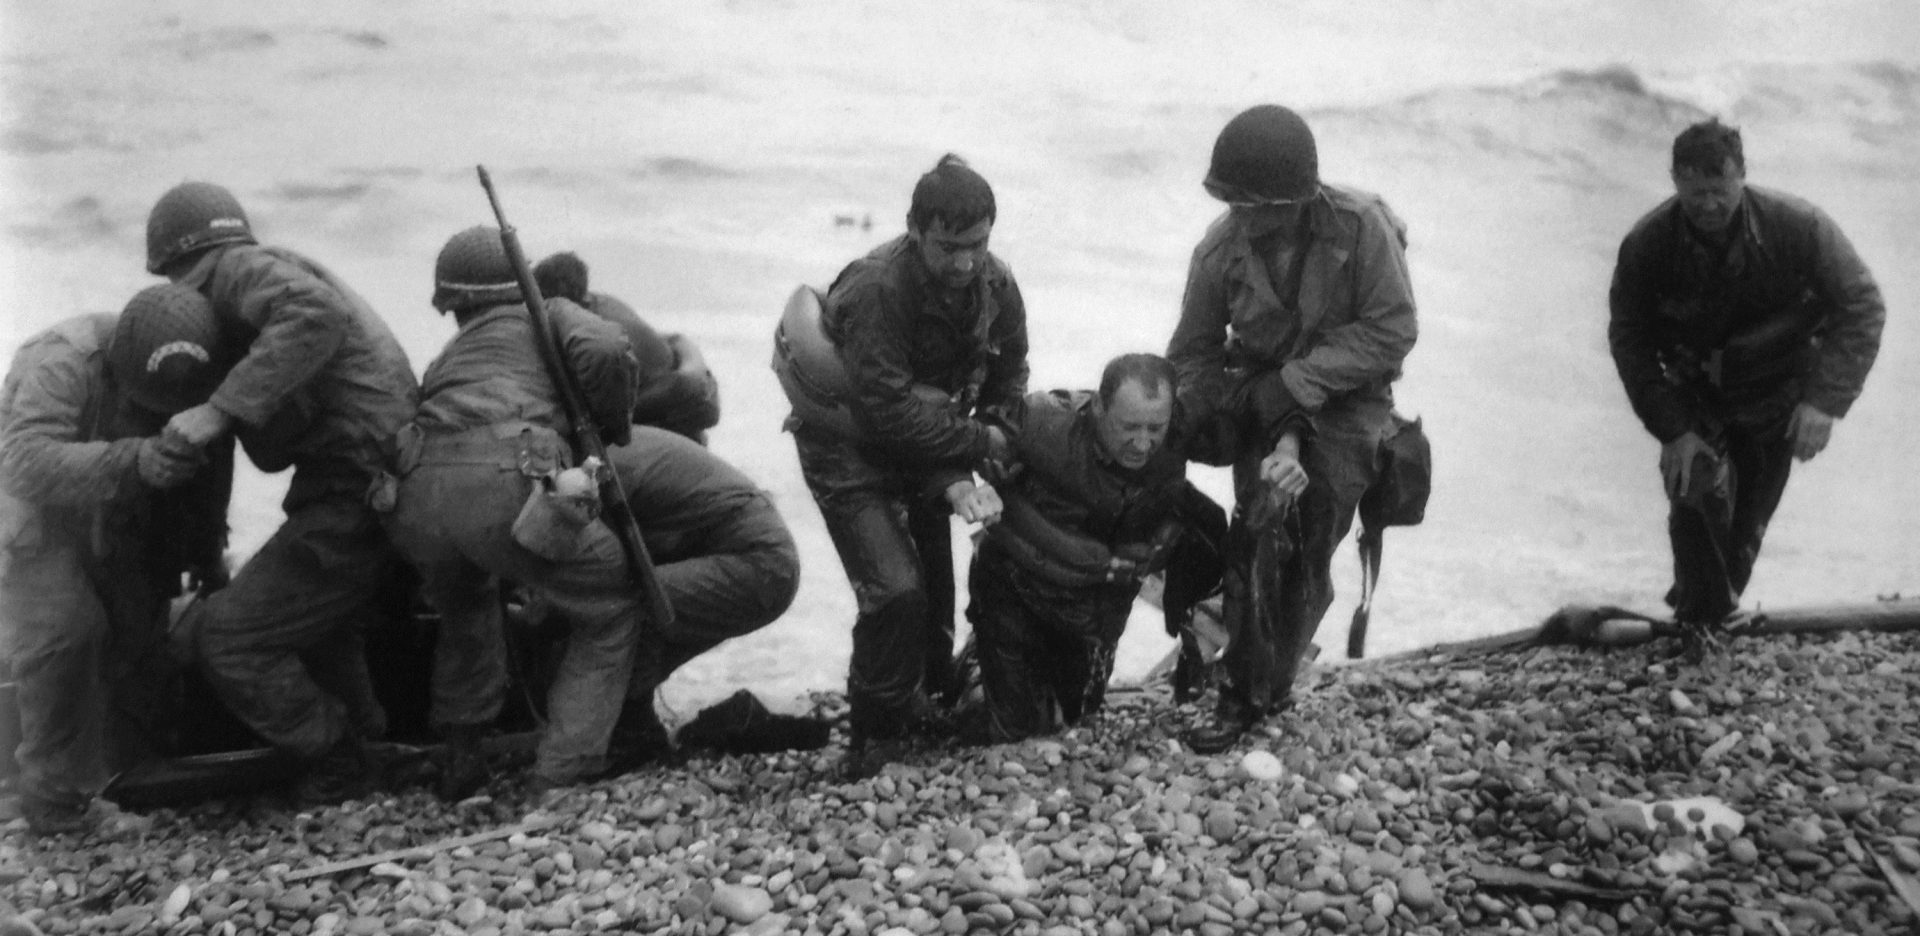 Members of an American landing unit help their exhausted comrades ashore during the Normandy invasion on June 7, 1944. Nick Russin is pictured in the center being dragged onto shore.